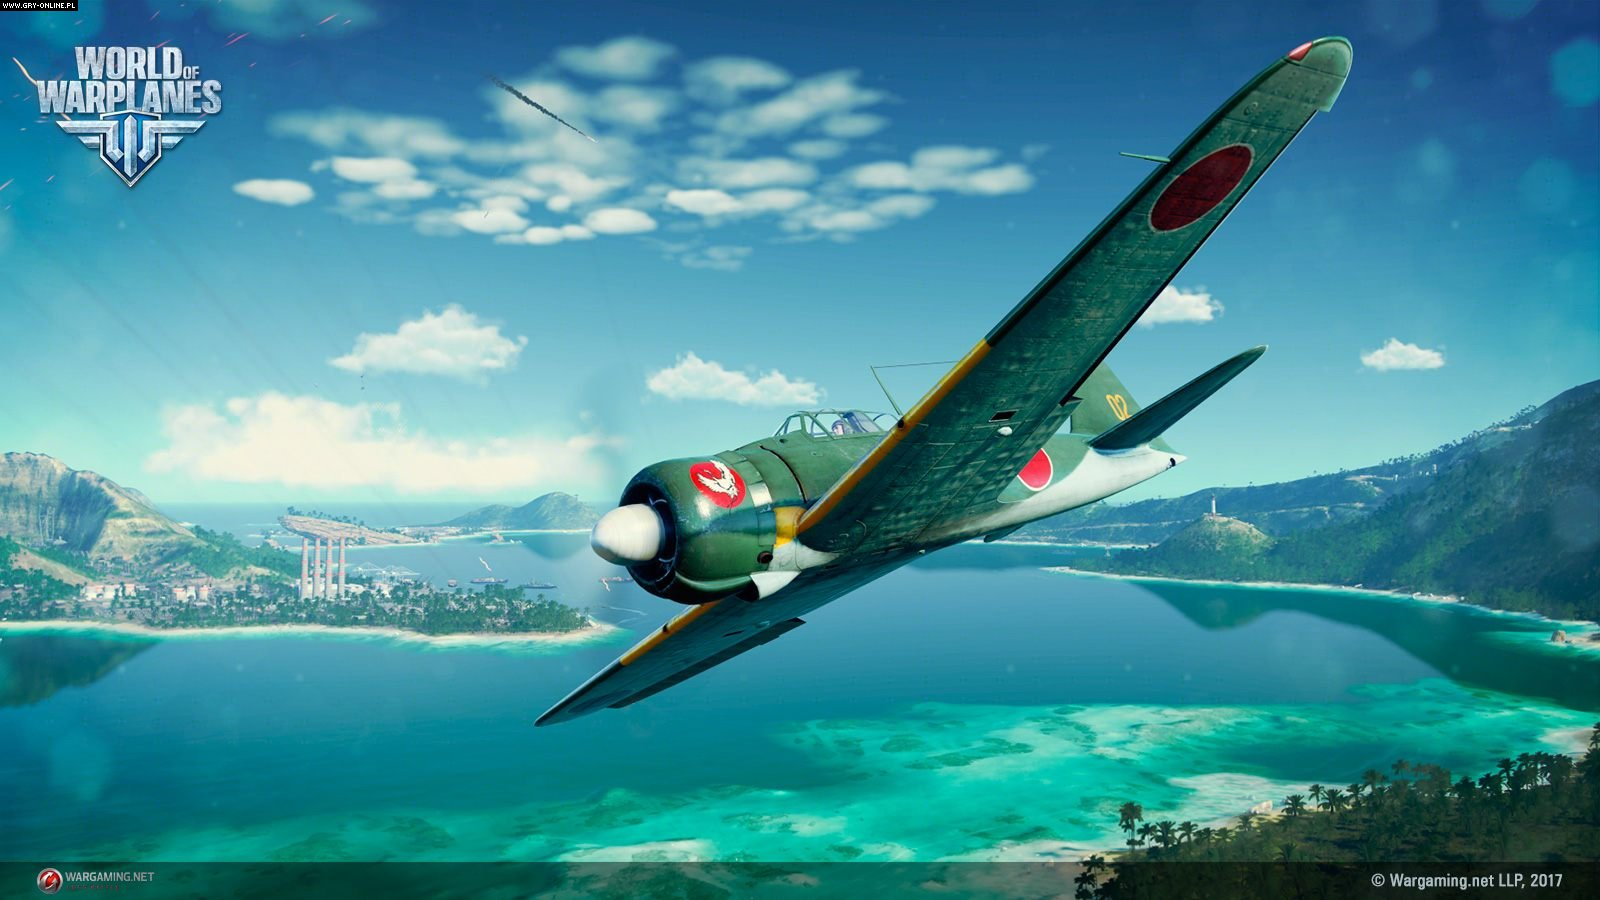 World of Warplanes PC Gry Screen 4/175, Wargaming